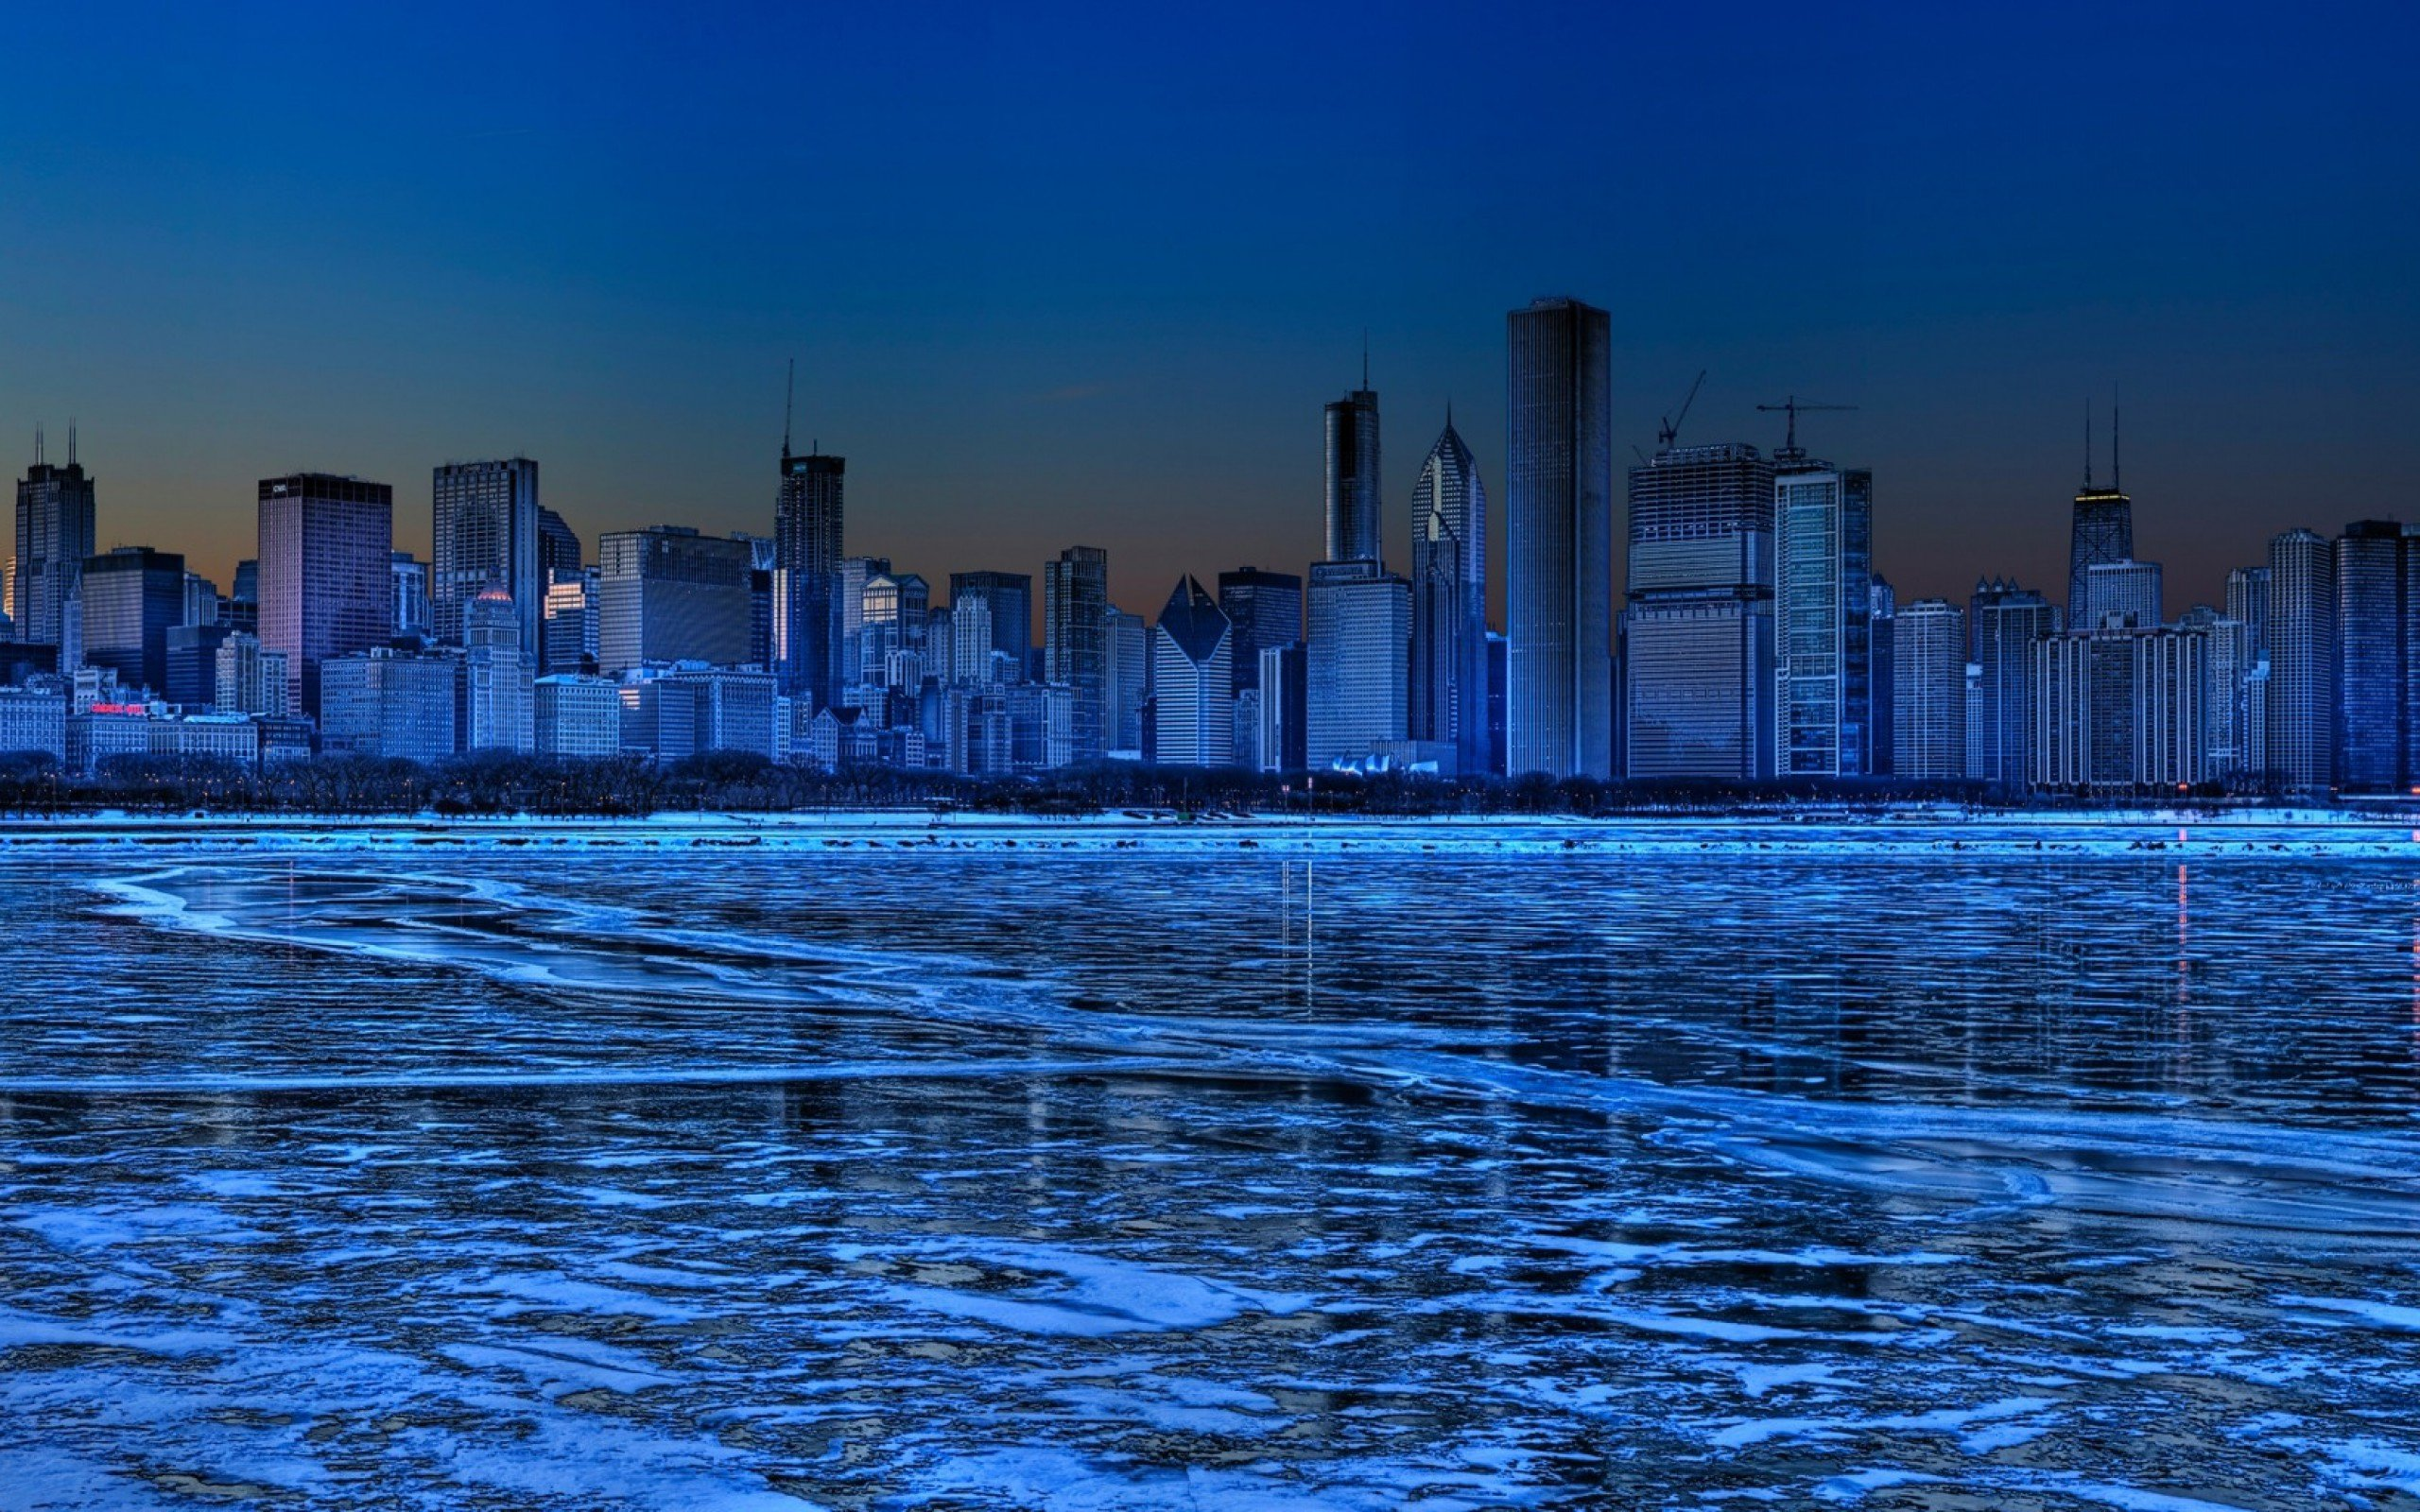 Lake nature water landscape hdr chicago winter city cities for Chicago landscape